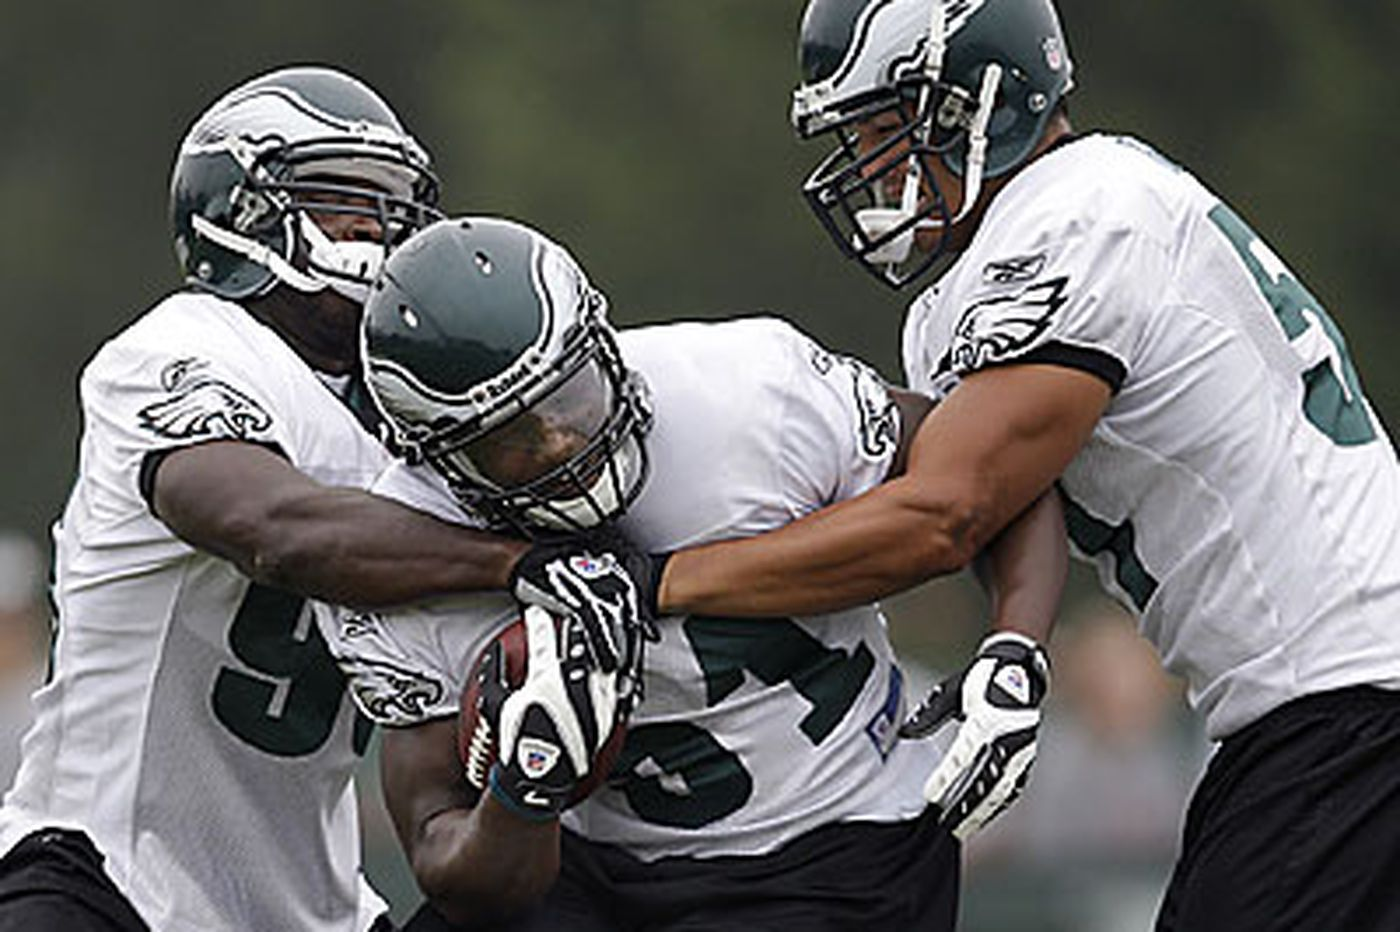 Eagles - Eagles linebackers are no tackling dummies